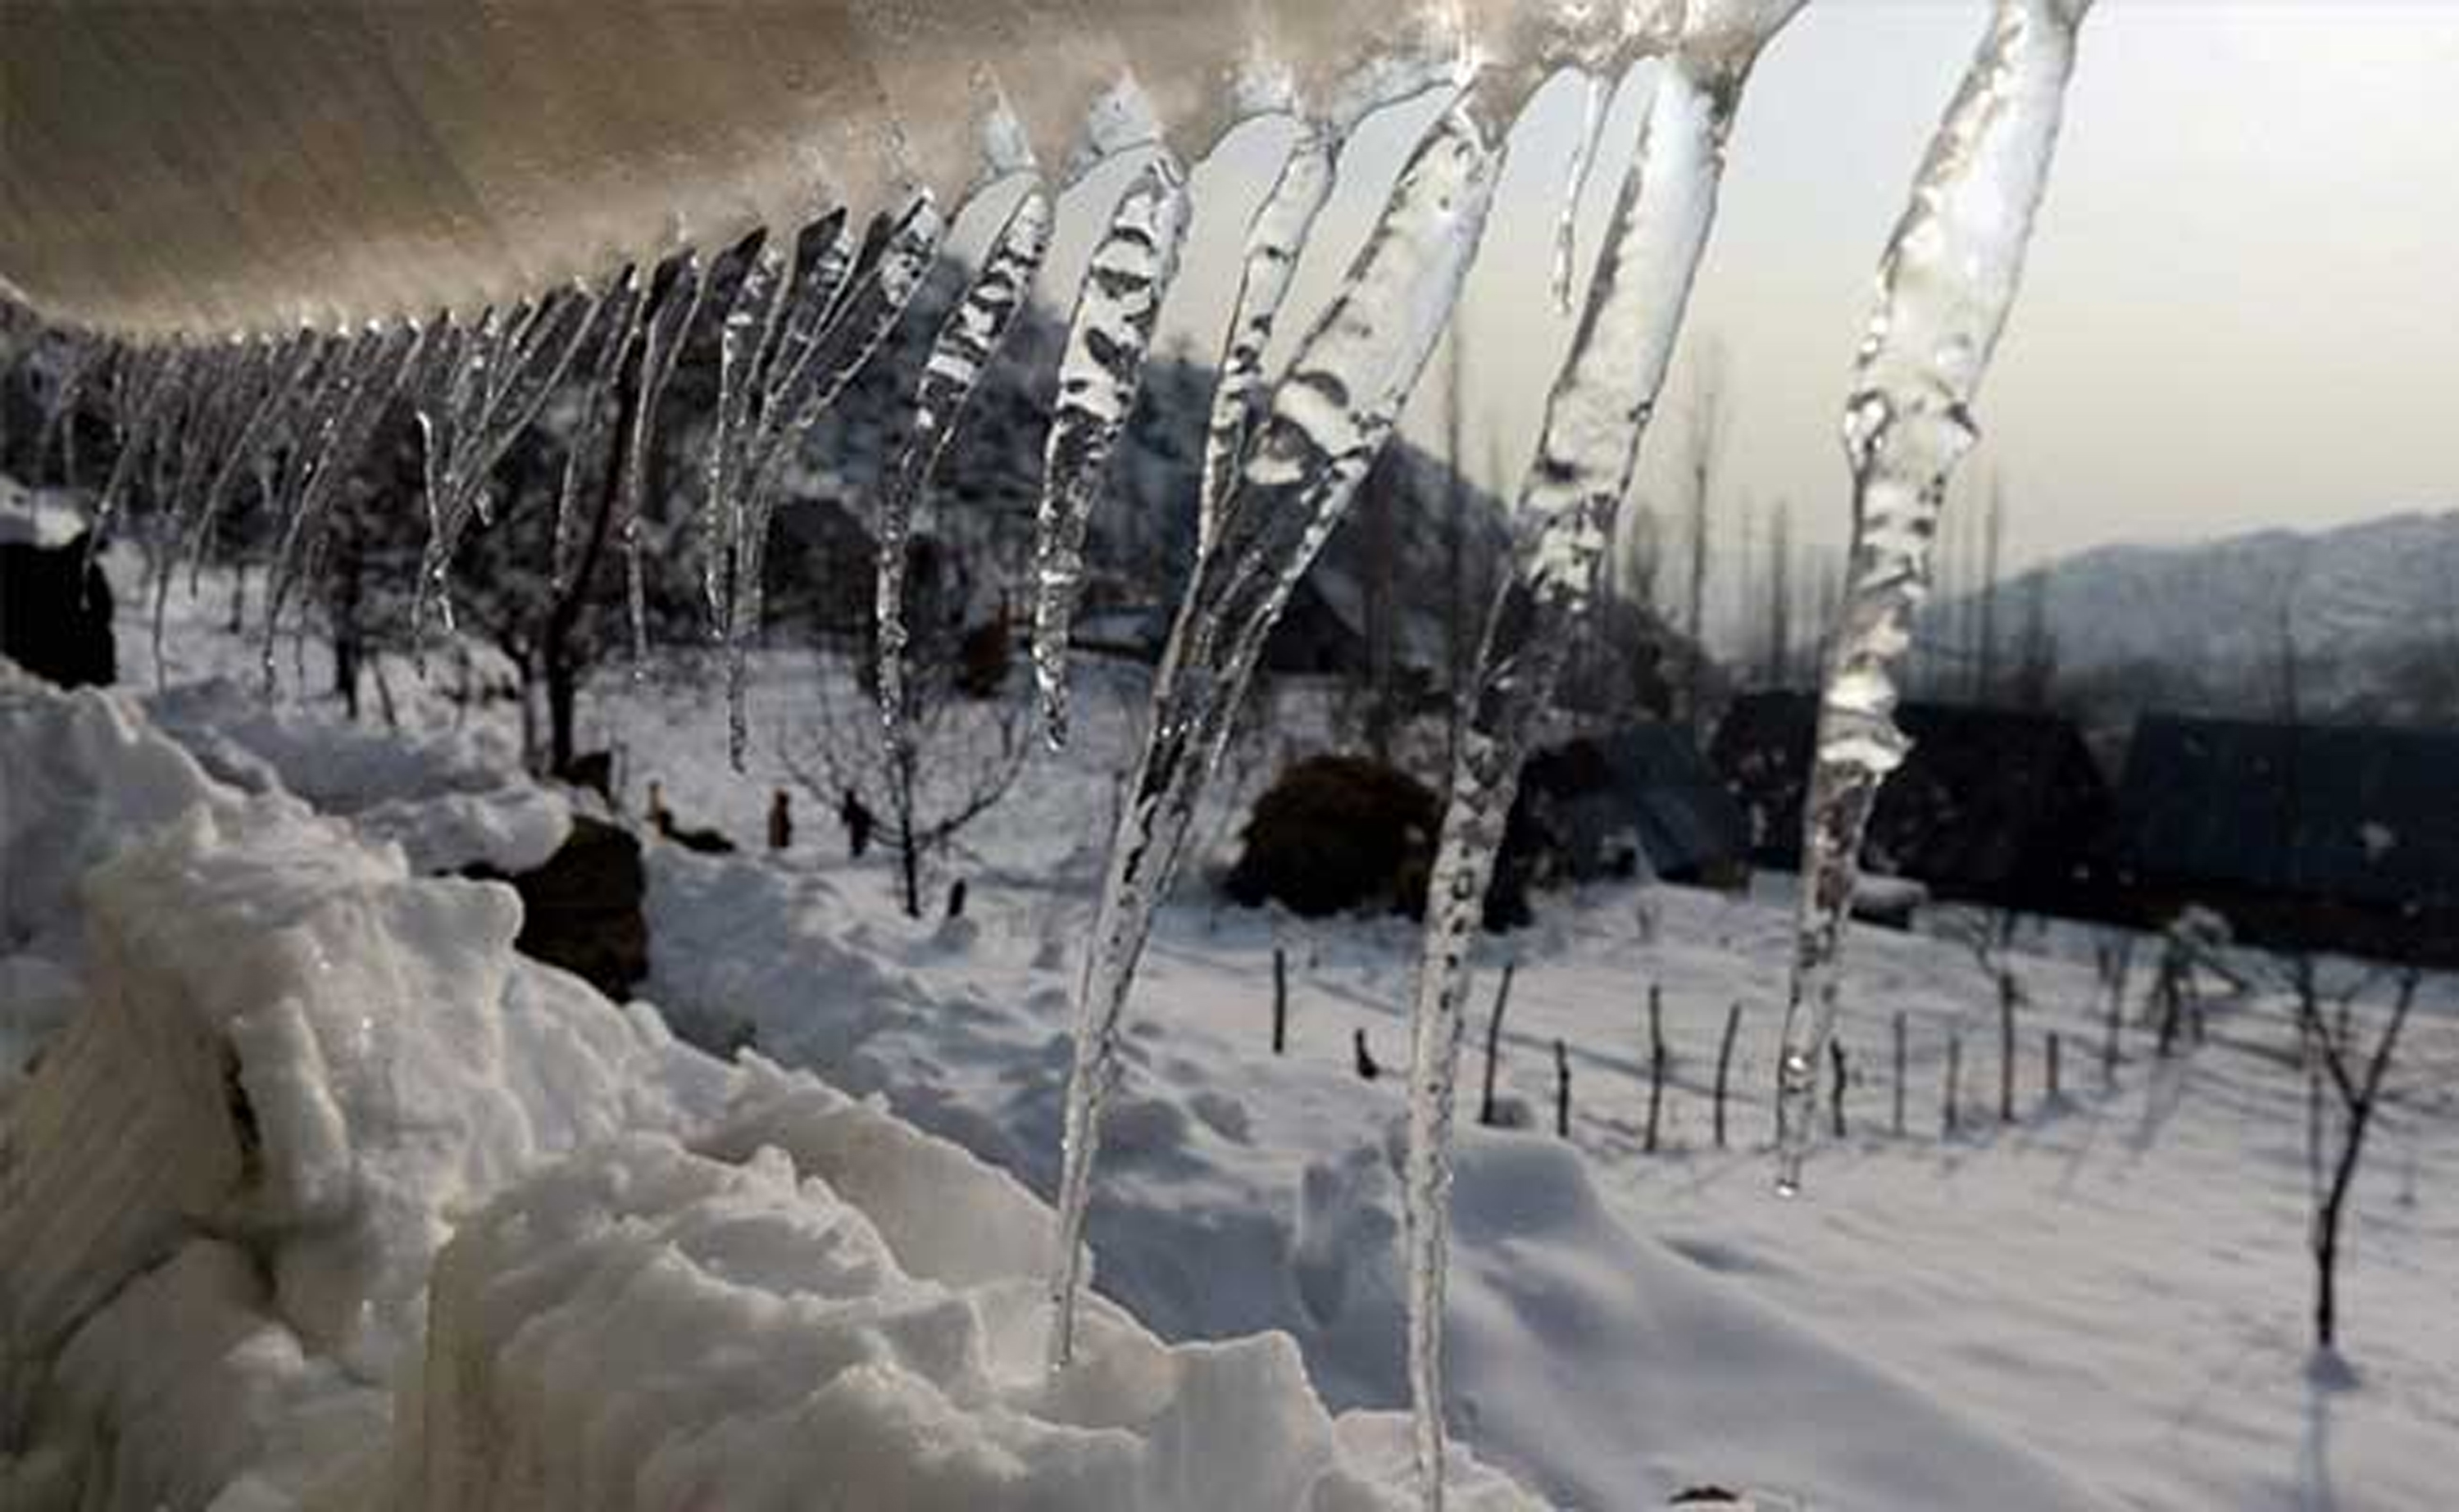 Mercury falls below freezing point across Kashmir Valley